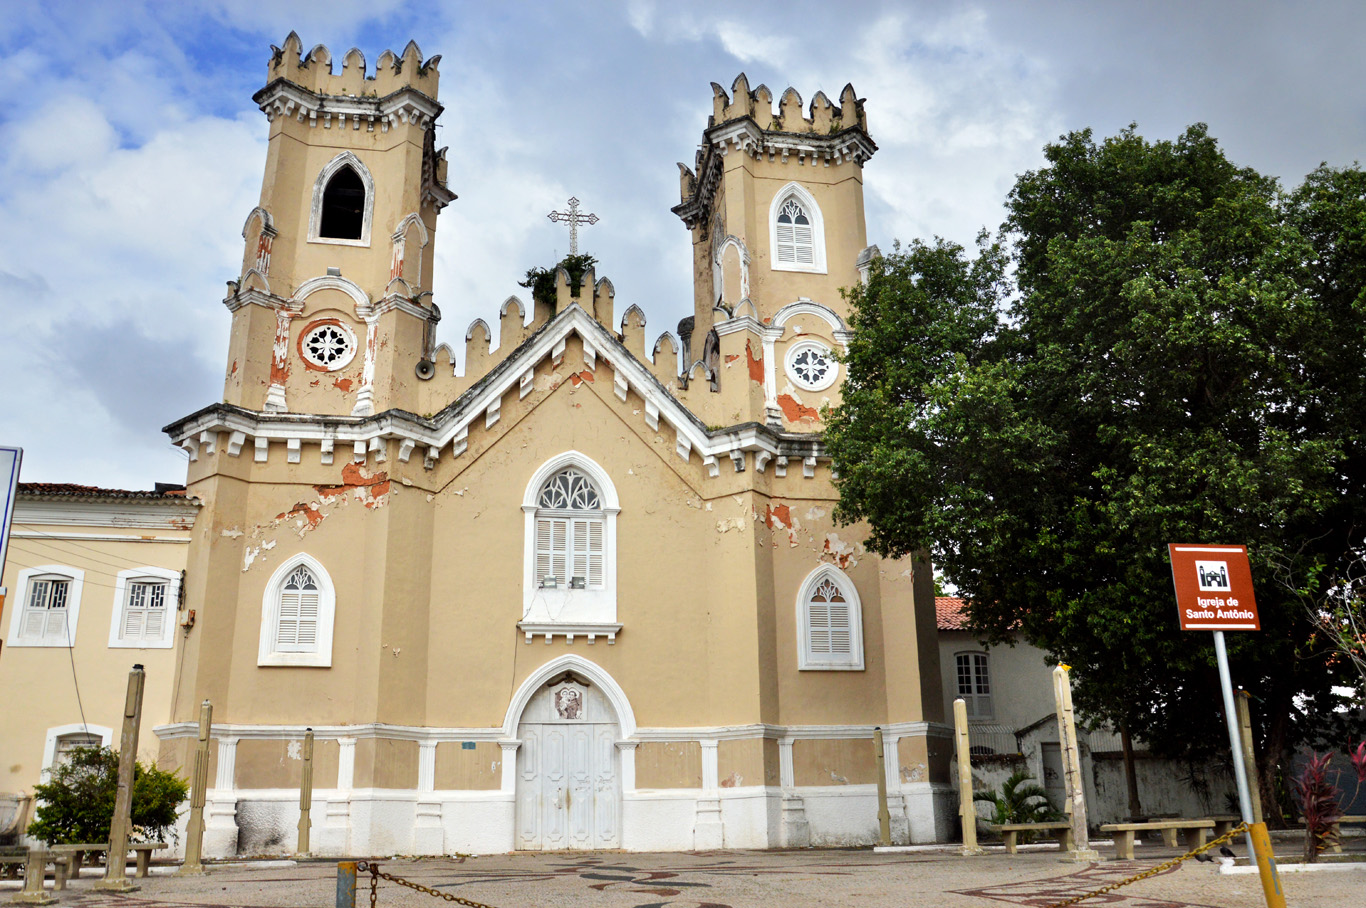 One of the churches in Sao Luis